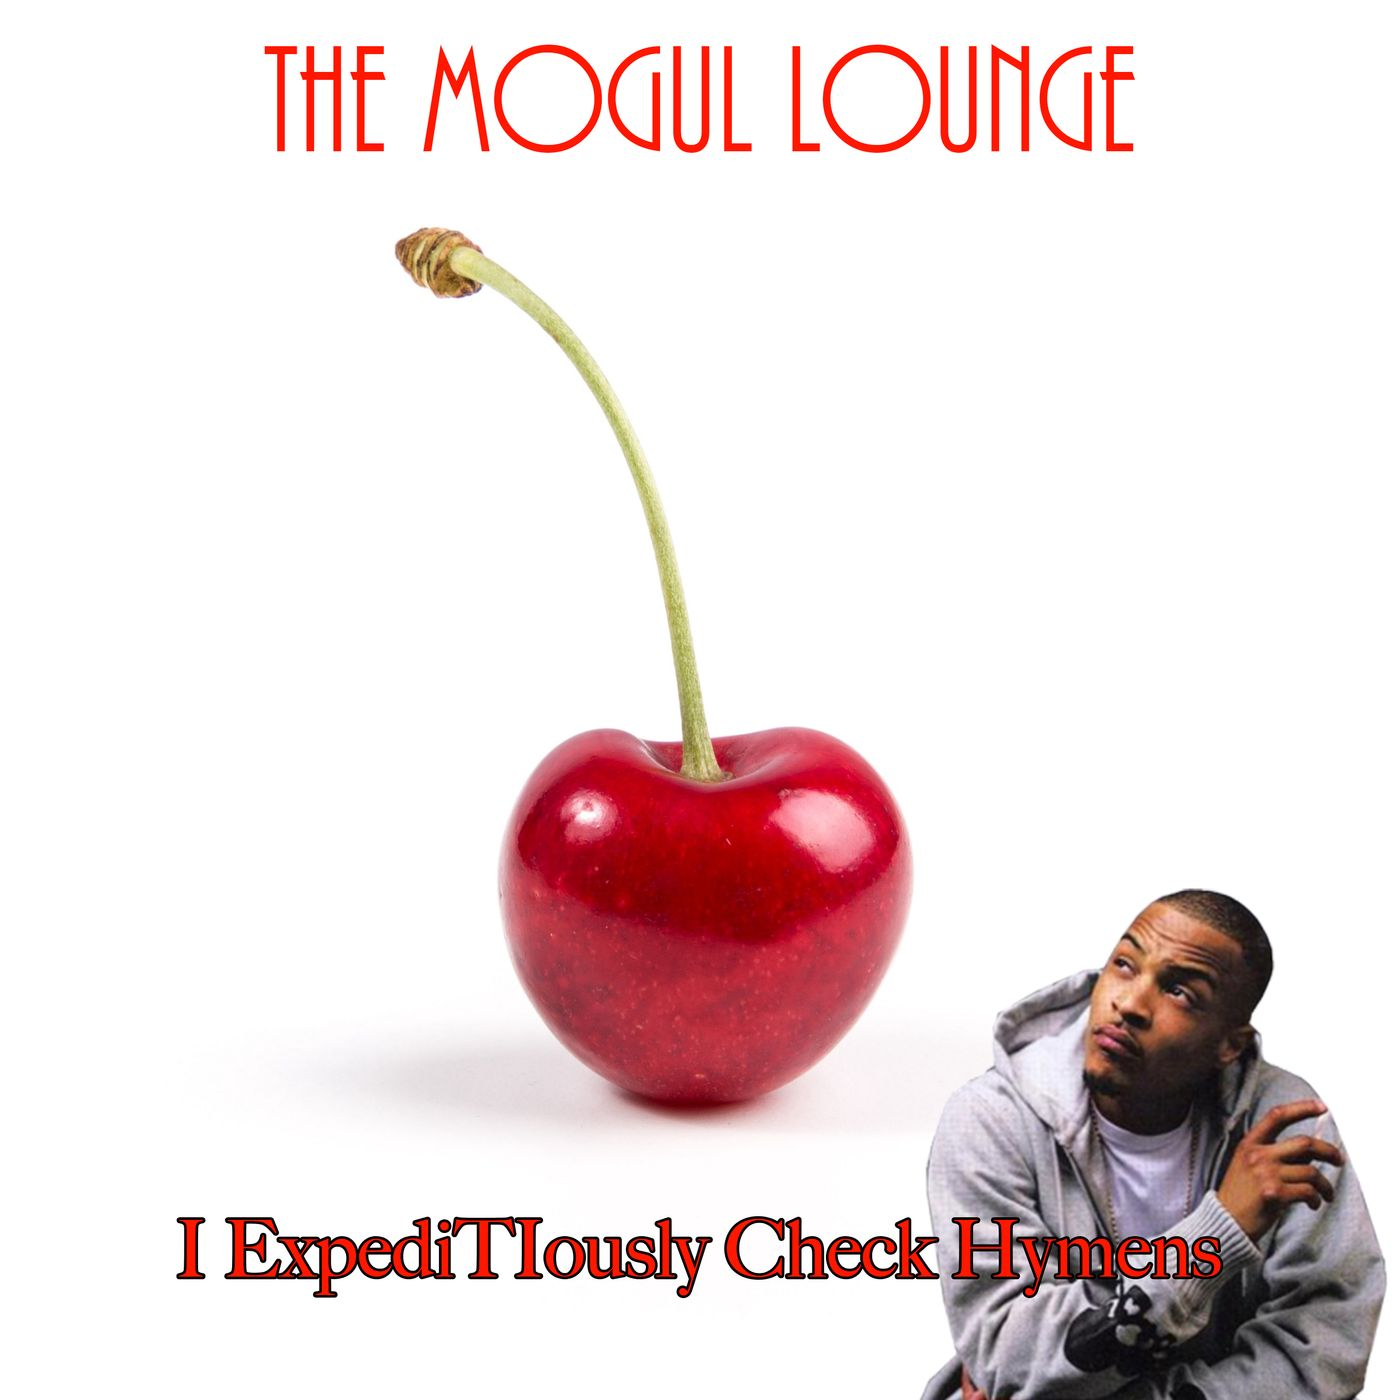 The Mogul Lounge Episode 208: I Expeditiously Check Hymens